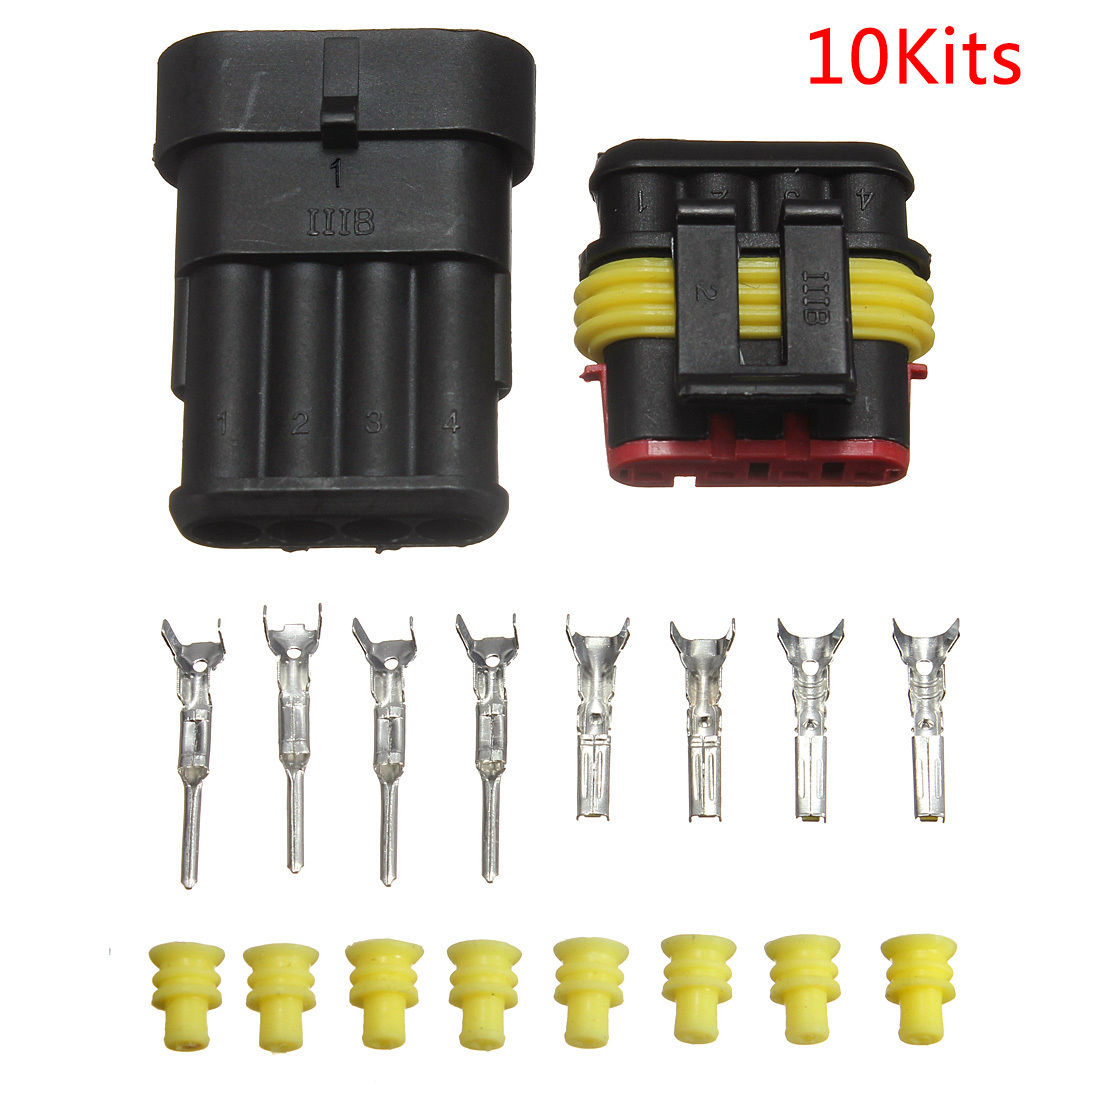 10 Kits Car Auto 4 Pin Way Sealed Waterproof Electrical Wire Connector Plug Sets the original 2mbi200l 060 code package machine disassemble